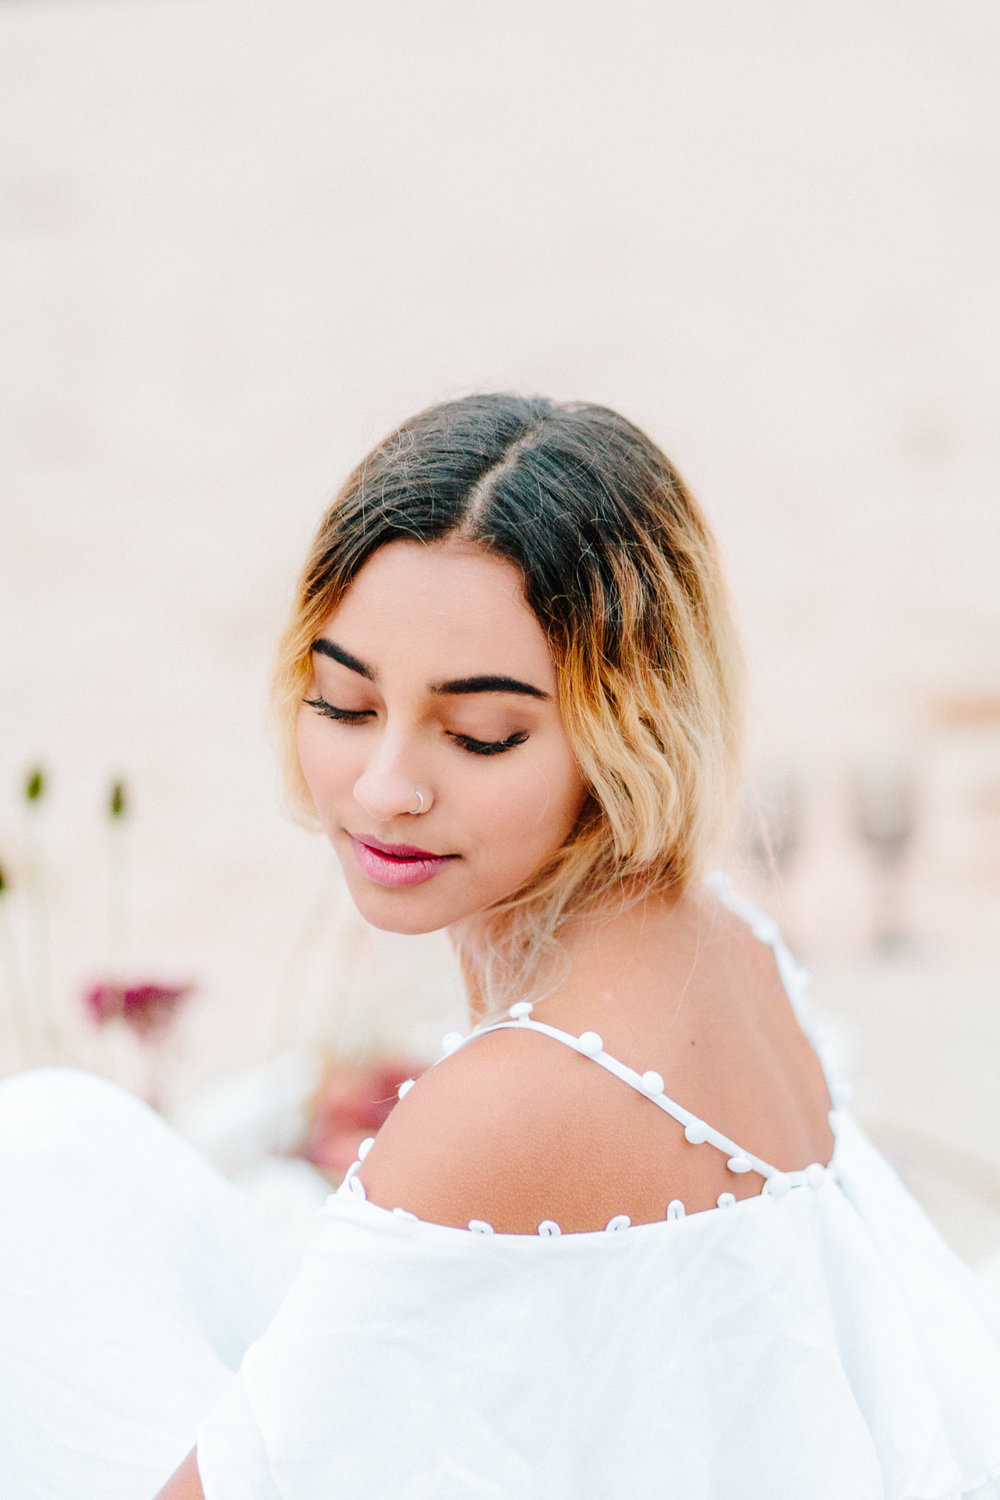 Speyer-Moroccan-Wedding-Inspiration-Pia-Anna-Christian-Wedding-Photography-S-74.jpg